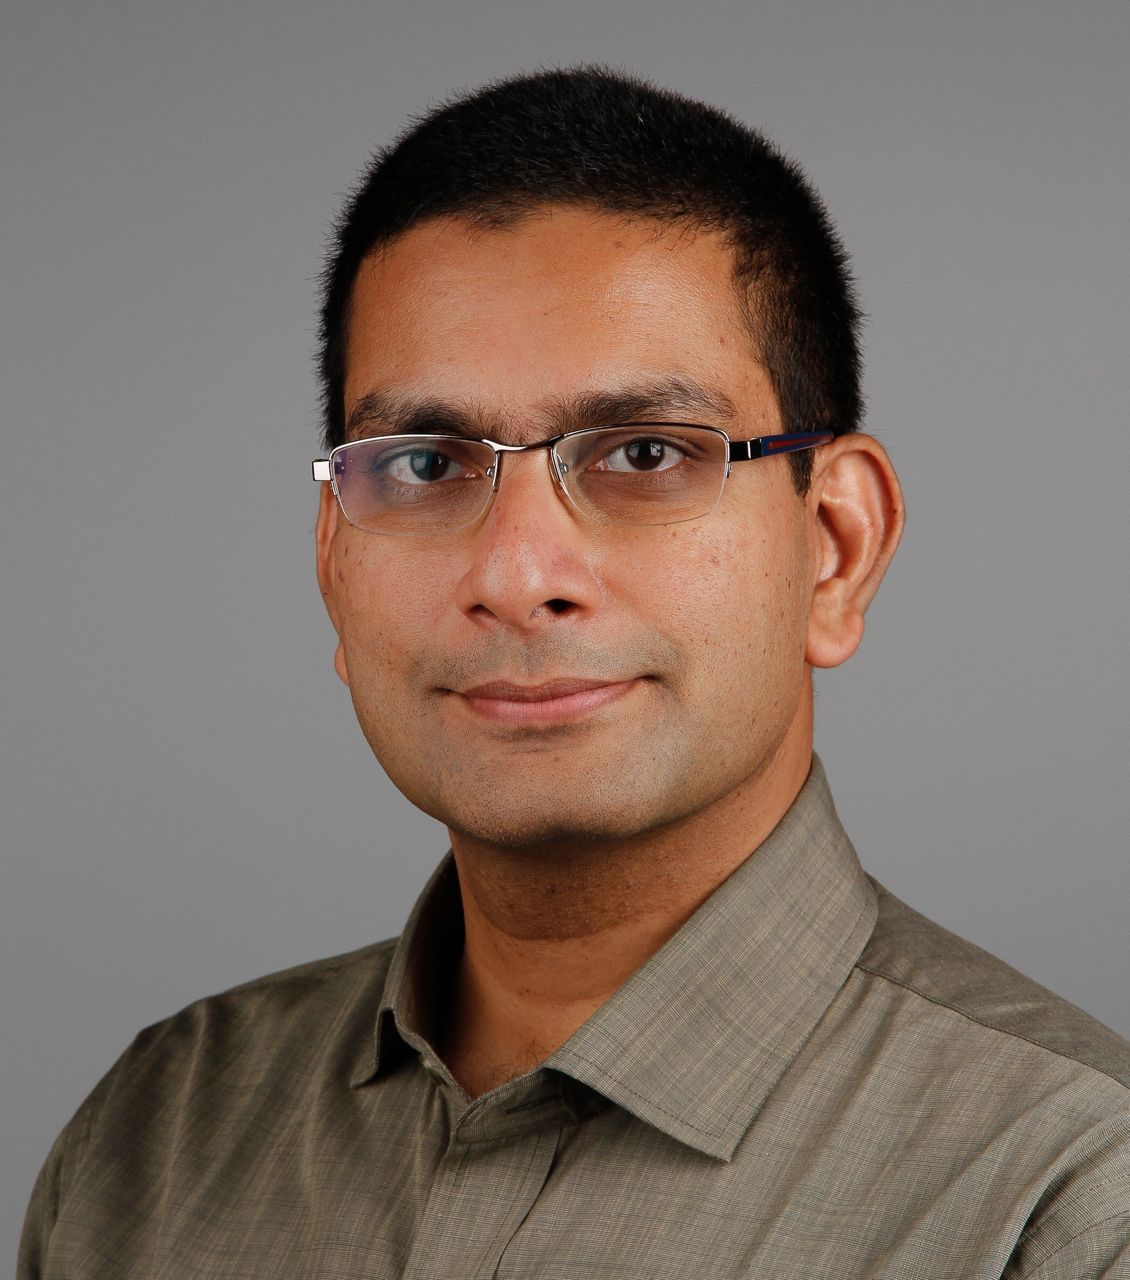 Kashyap Kompella, the author of this blog